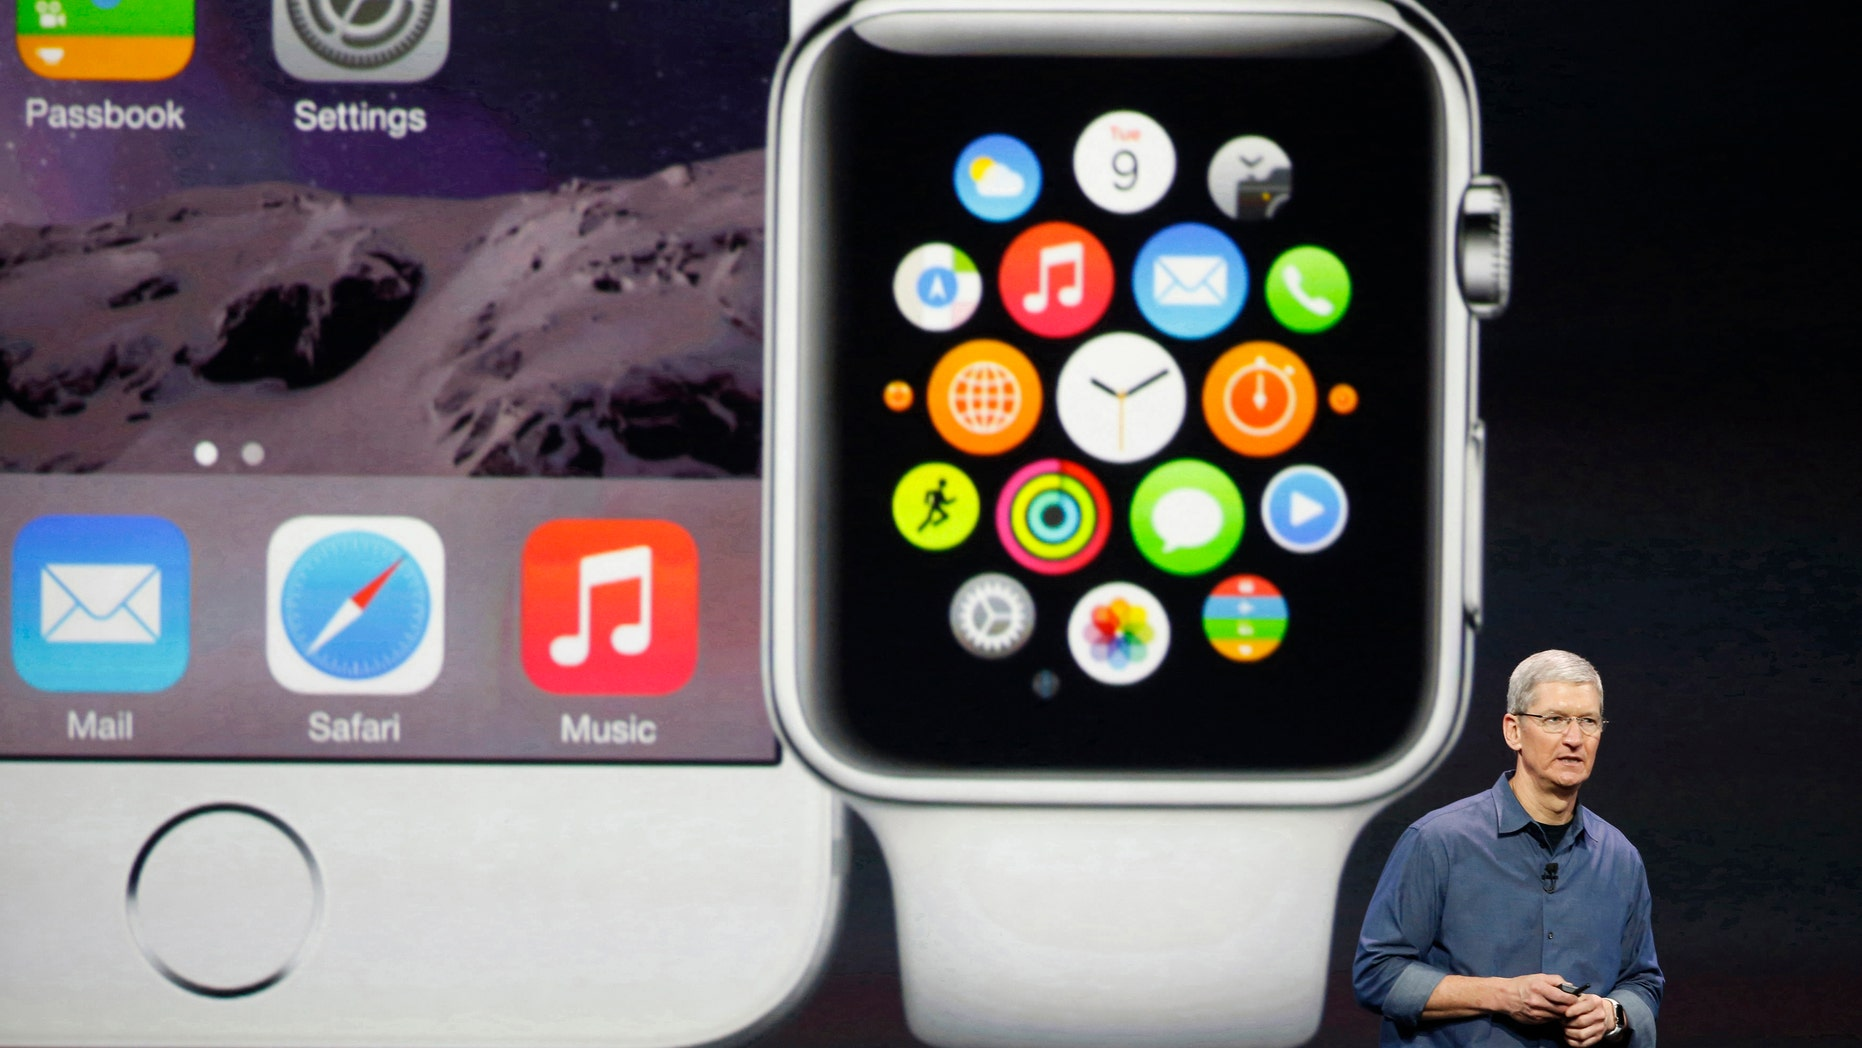 Apple CEO Tim Cook speaks during an Apple event announcing the iPhone 6 and the Apple Watch at the Flint Center in Cupertino, California, Sept. 9, 2014.